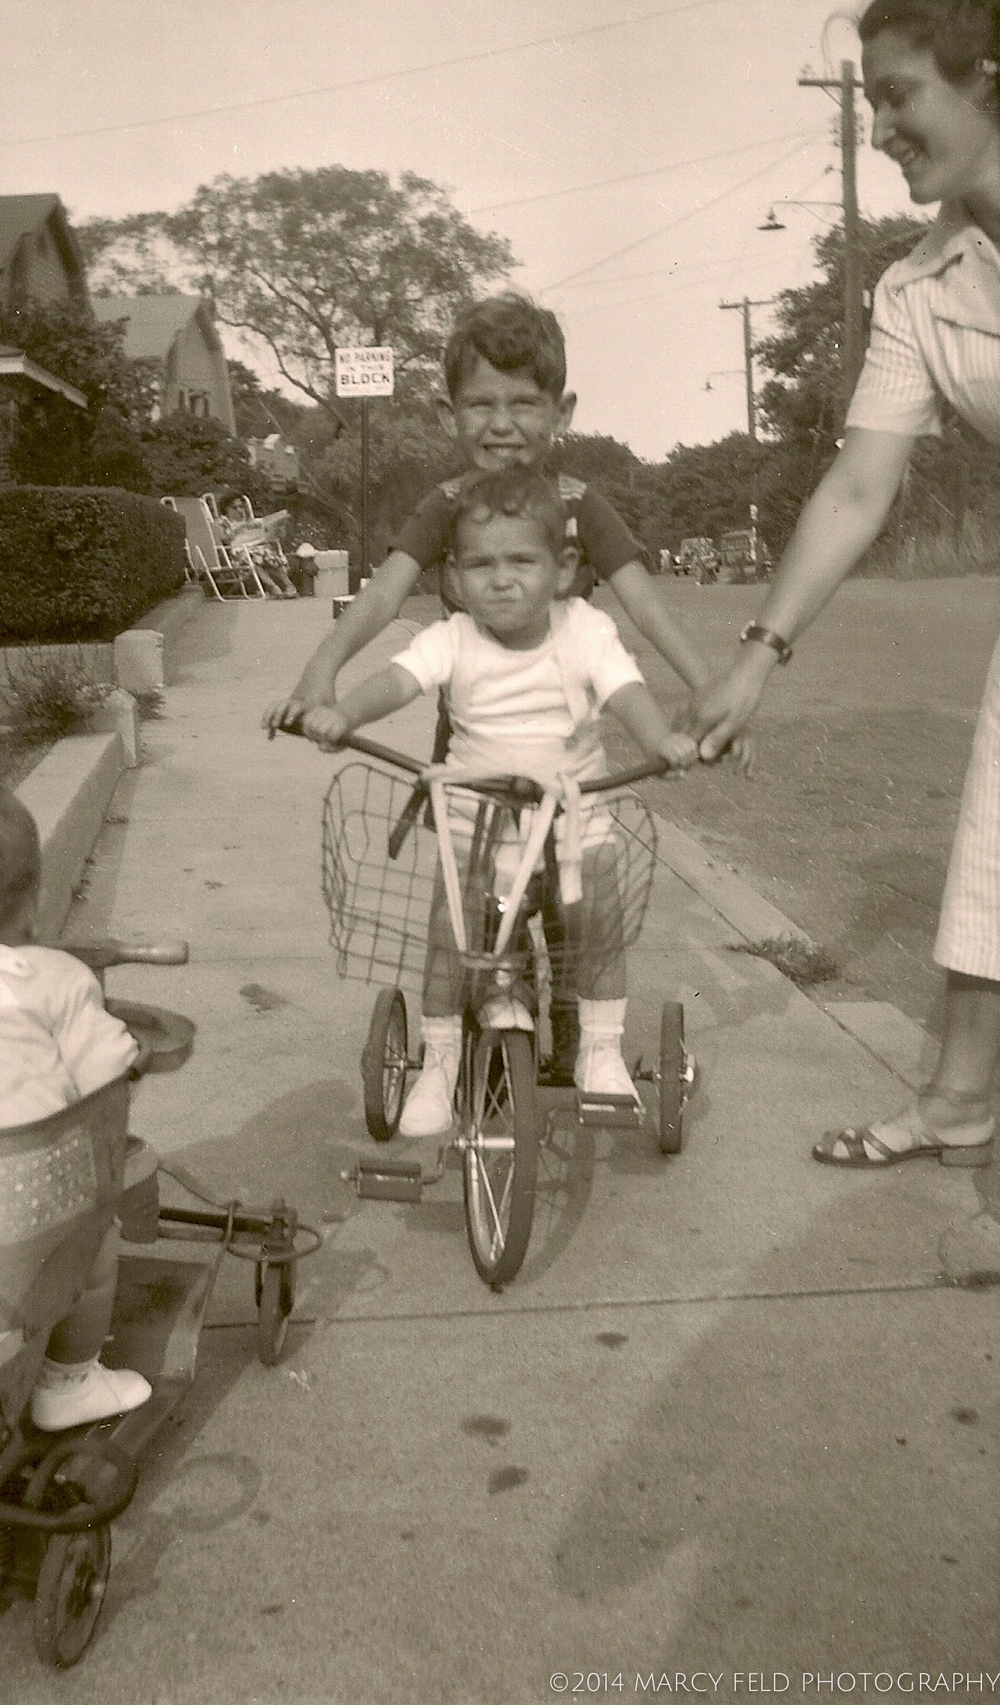 My aunt & cousins with my brother in that stroller in Edgemere probably some in 1949